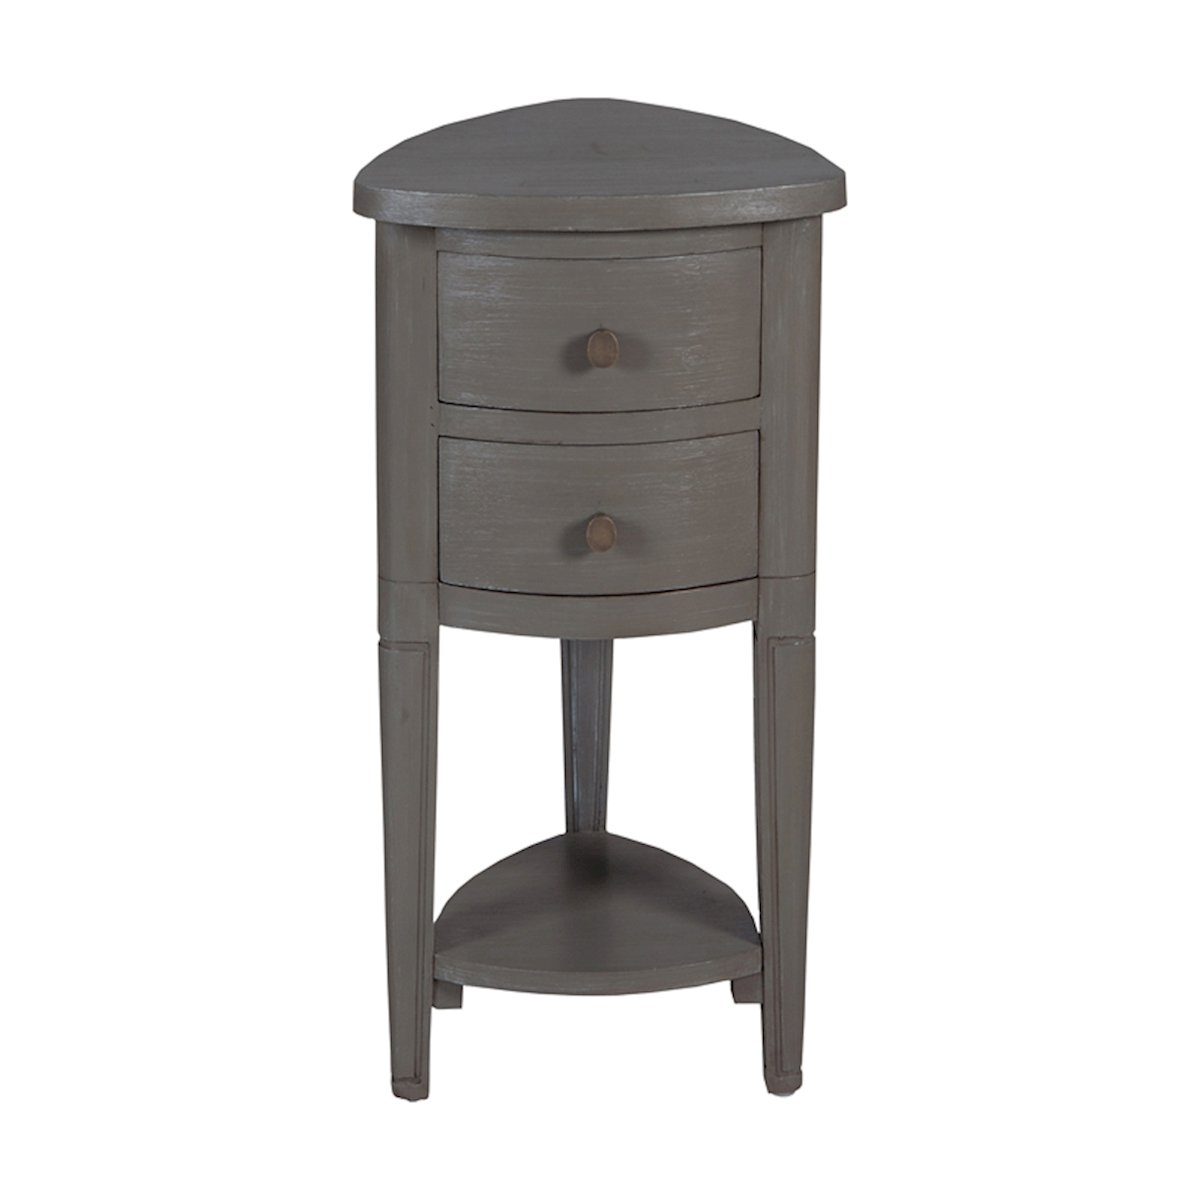 guildmaster corner accent table tables with drawers furniture hairpin leg end ashley king size beds target dishes bedside charging station bedroom night lamps patriotic runner